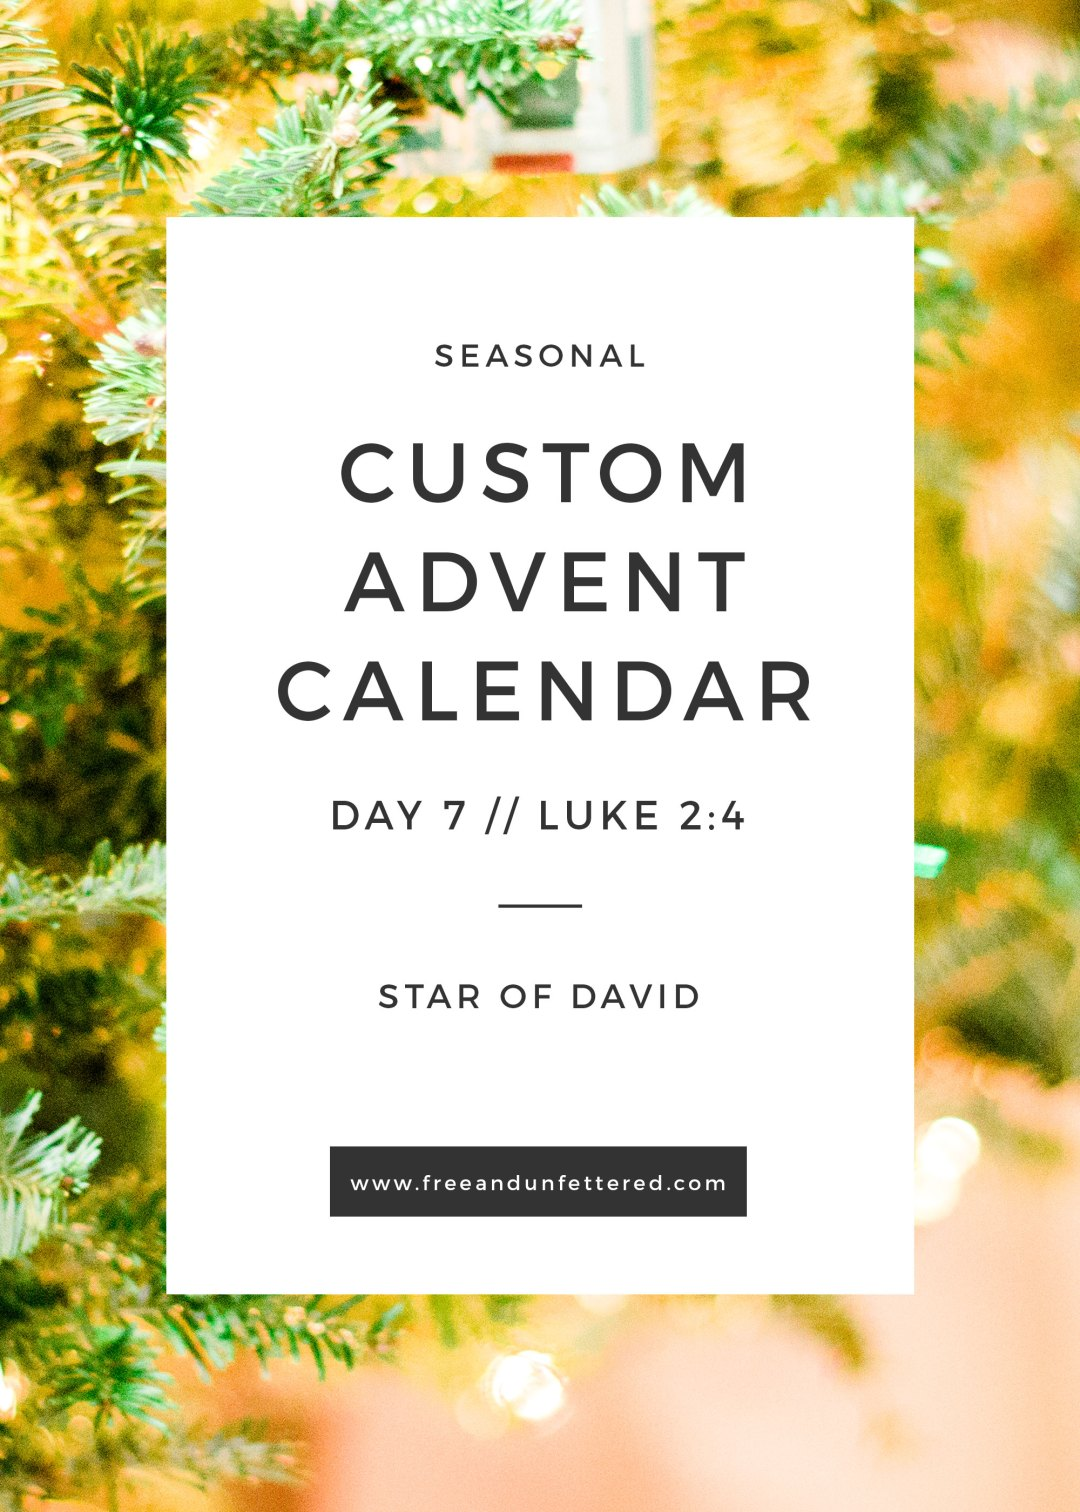 A Yarn-Wrapped Star of David Ornament for Day 7 of Advent